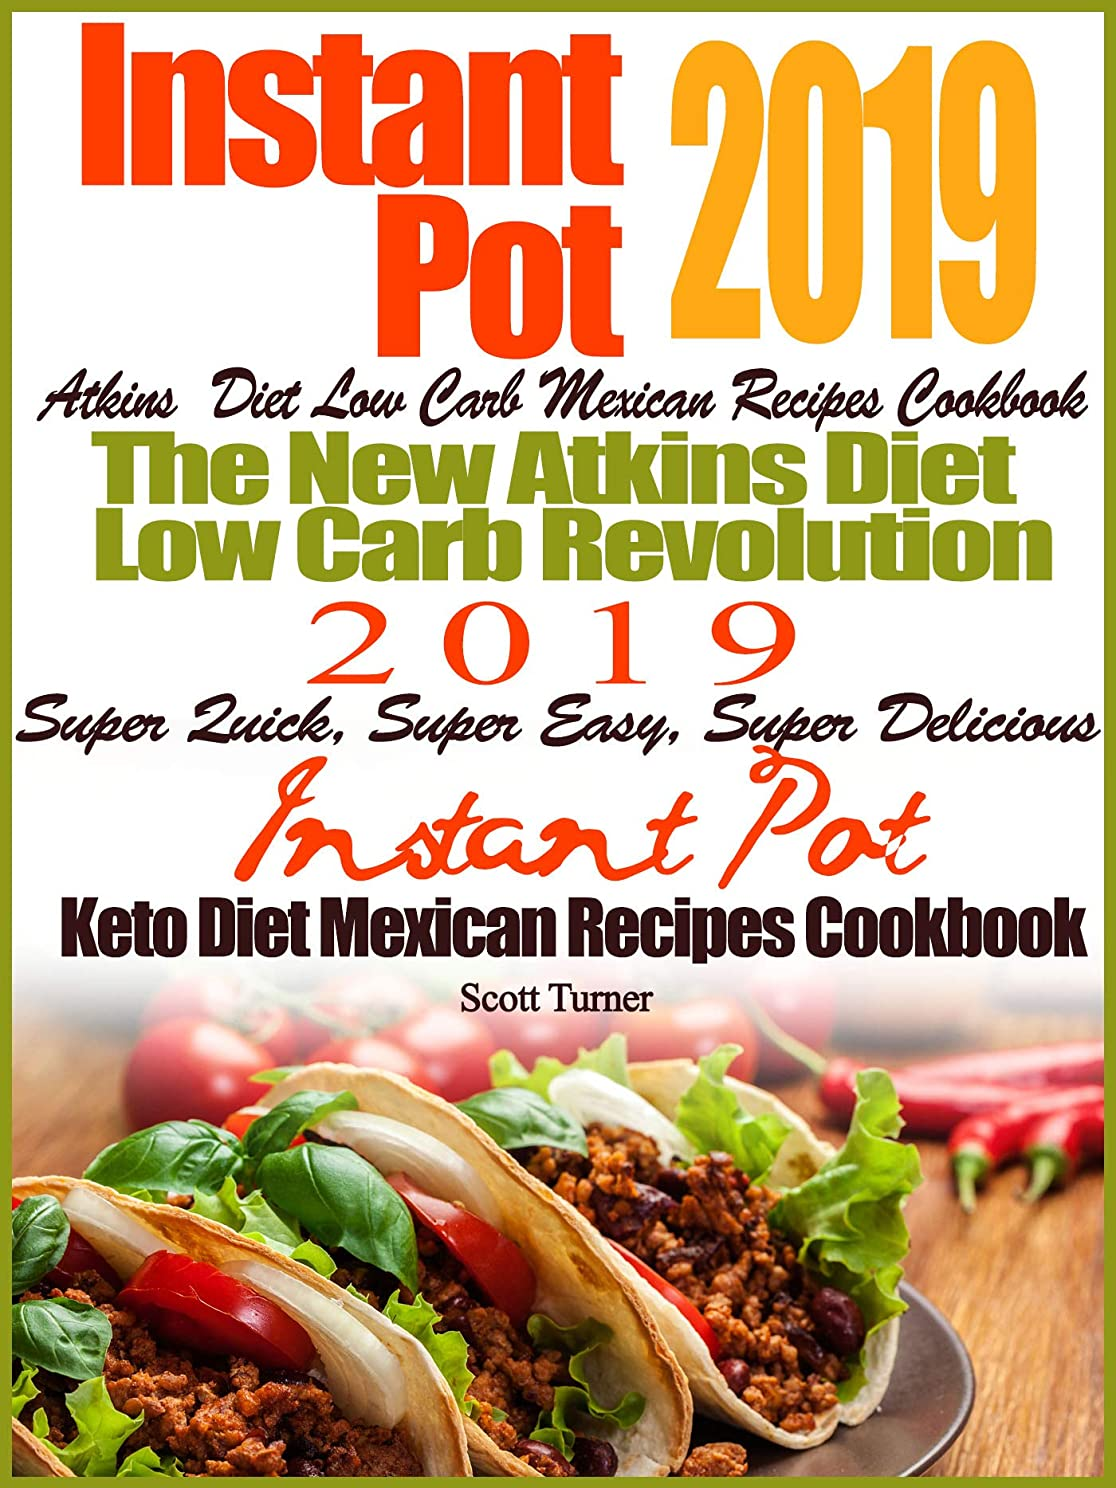 テラス安定した通り抜けるInstant Pot 2019 Atkins Diet Low Carb Mexican Recipes Cookbook The New Atkins Diet Low Carb Revolution 2019 Super Quick, Super Easy, Super Delicious Instant ... Mexican Recipes Cookbook (English Edition)